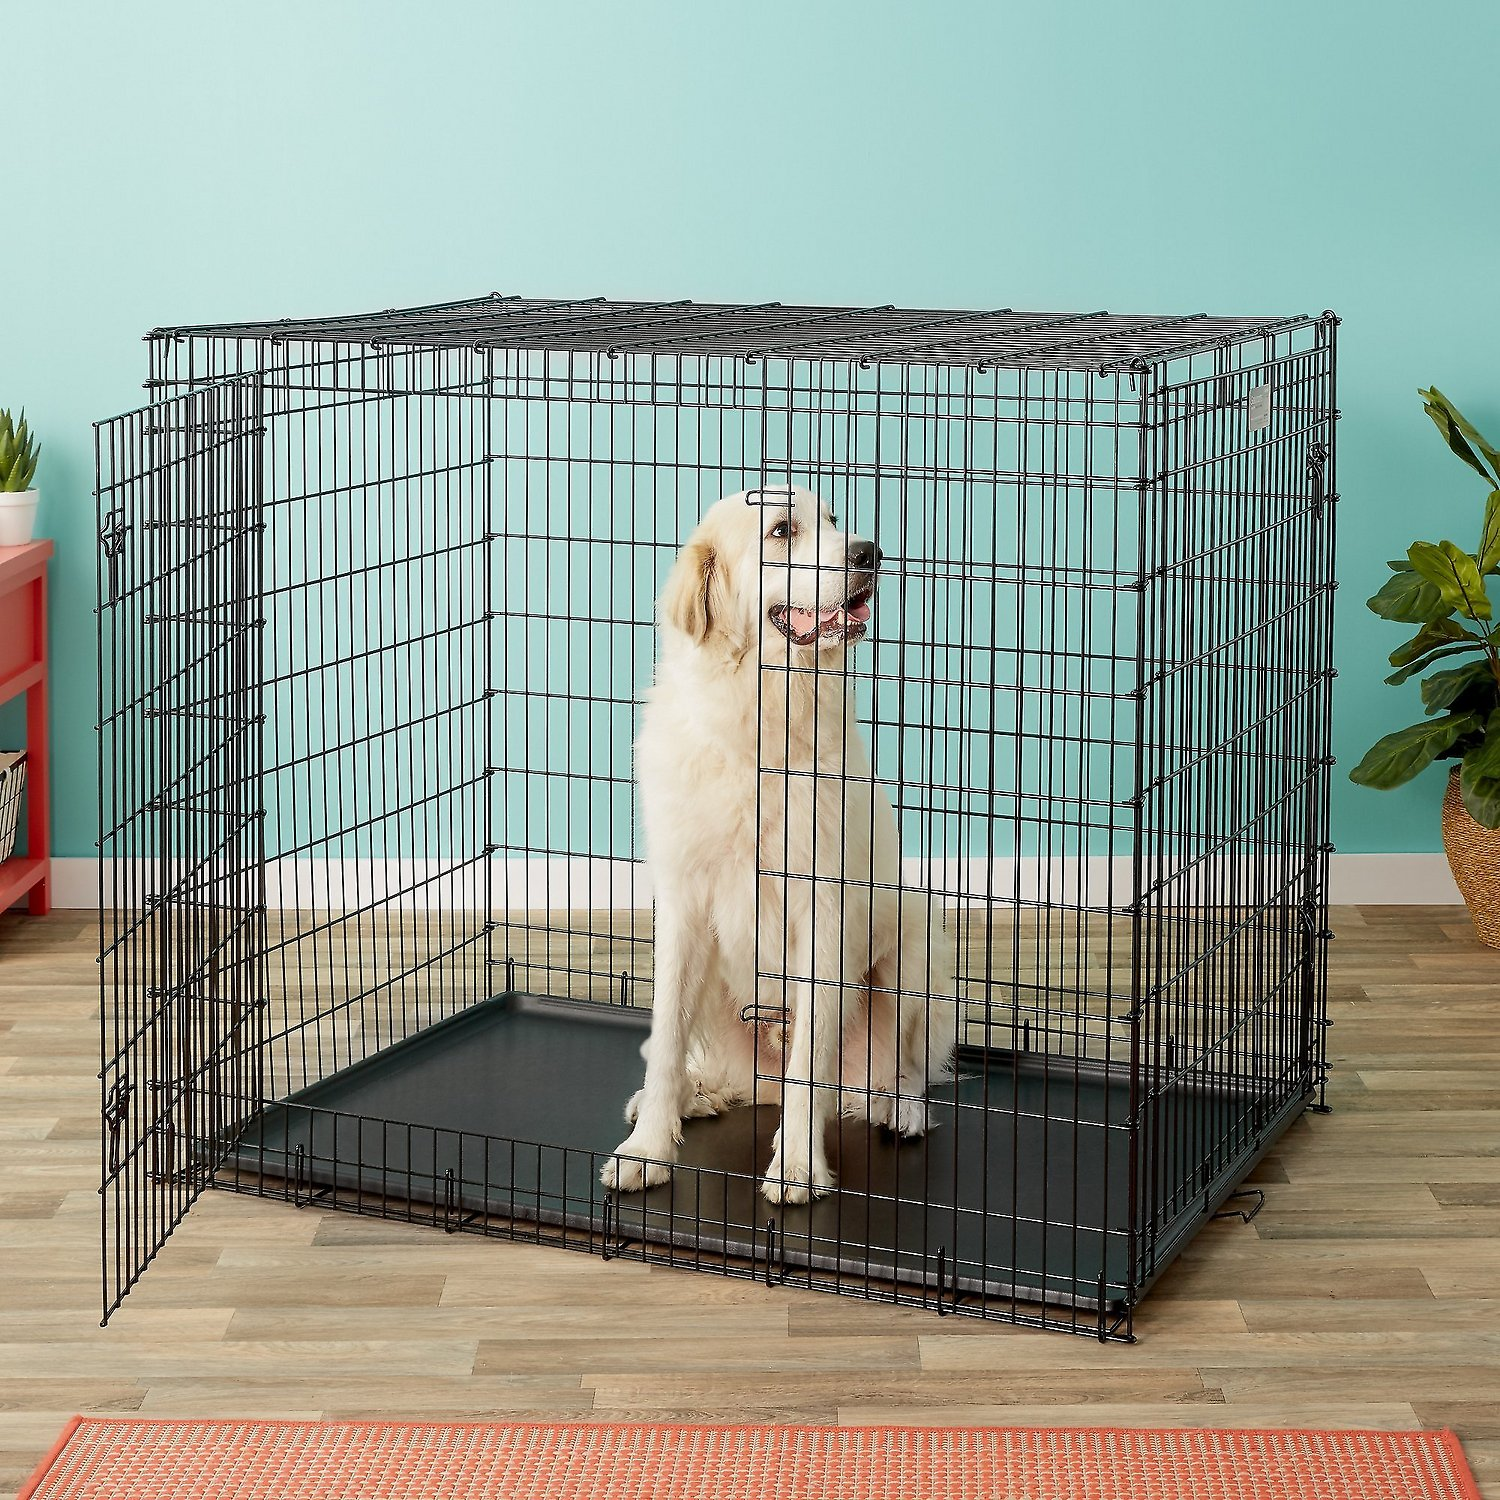 midwest solutions series xxlarge heavy duty double door dog crate  - midwest solutions series xxlarge heavy duty double door dog cratexxlarge in  chewycom